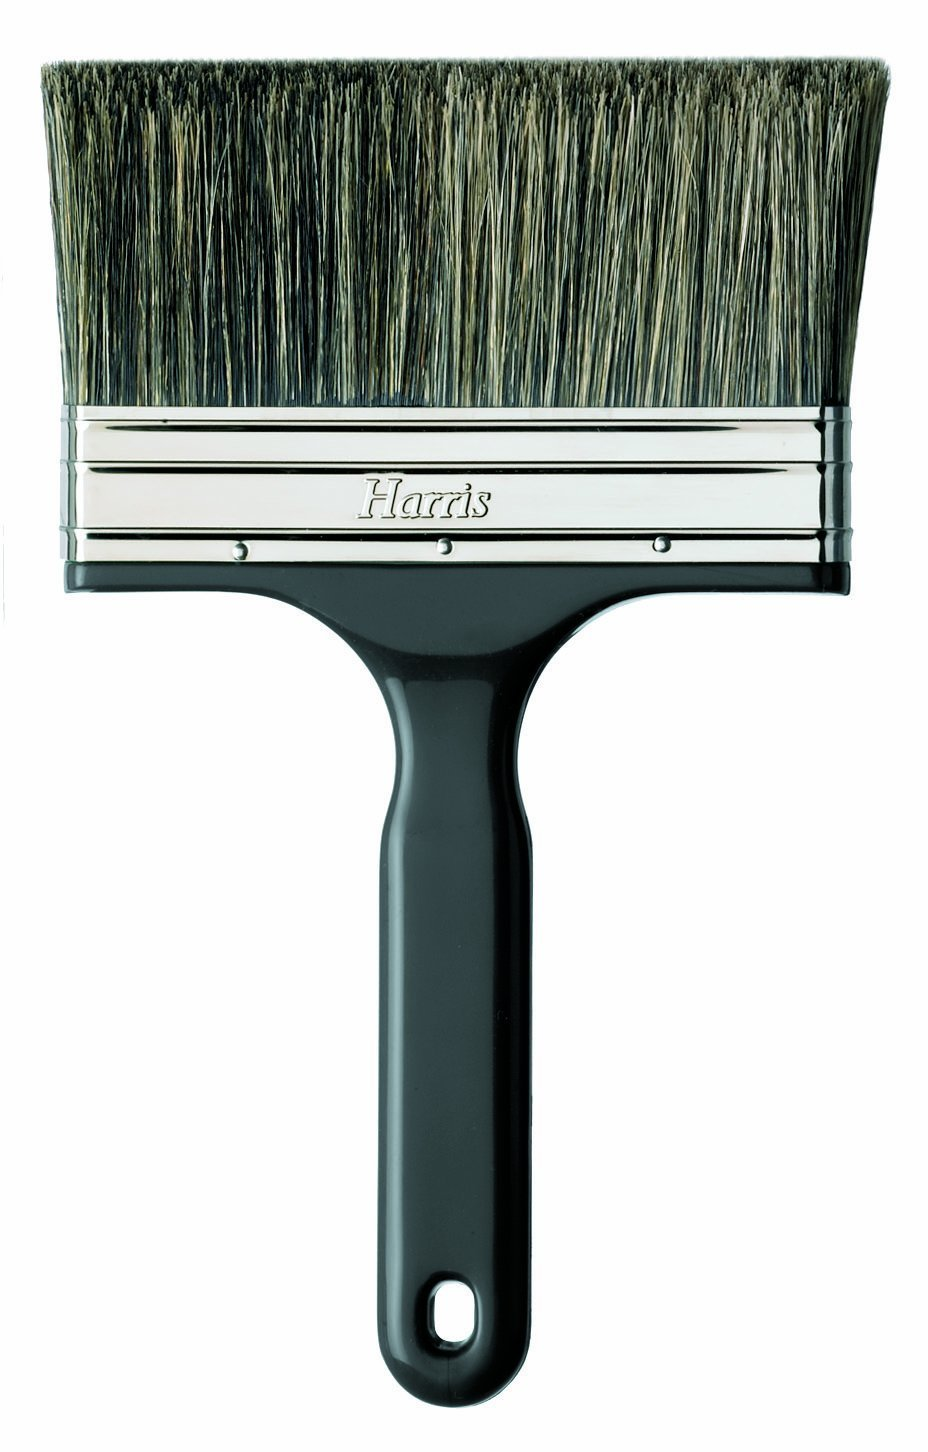 L.G Harris 80606 6-inch Taskmaster Emulsion Brush